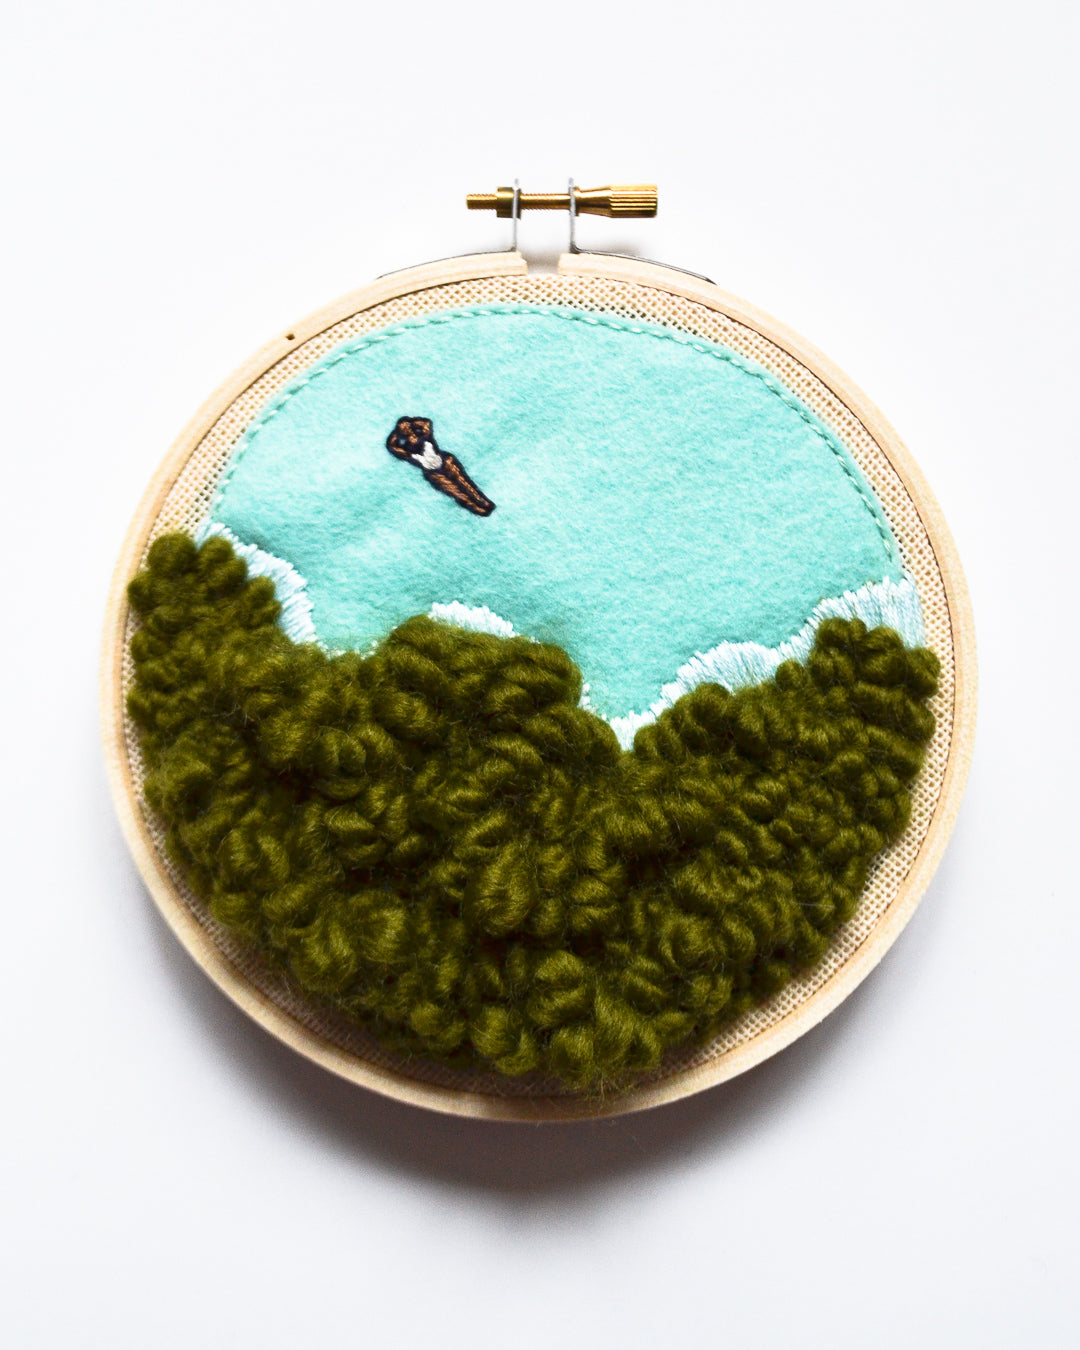 Mini Lagoon No. 10 Original Art - 5 in. hoop